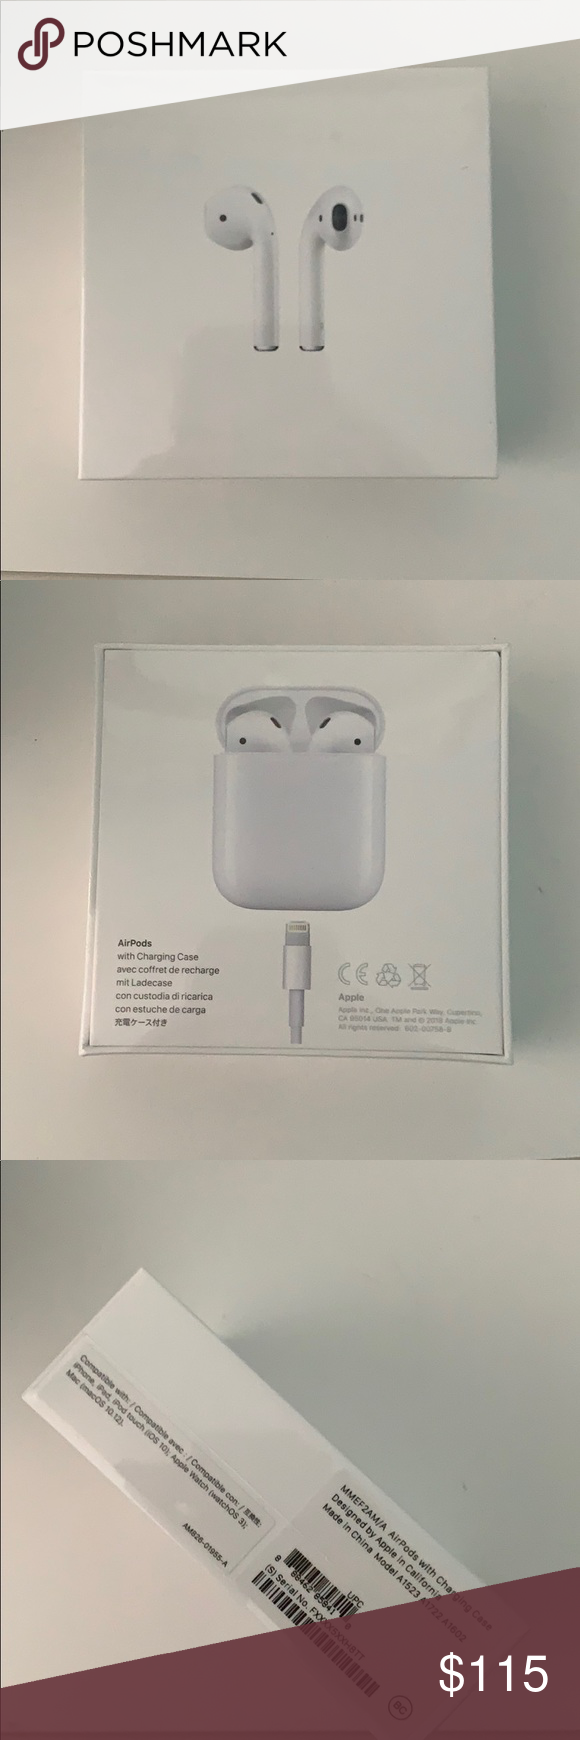 Brand New Apple Airpods Generation 1 Generation Brand New Things To Sell